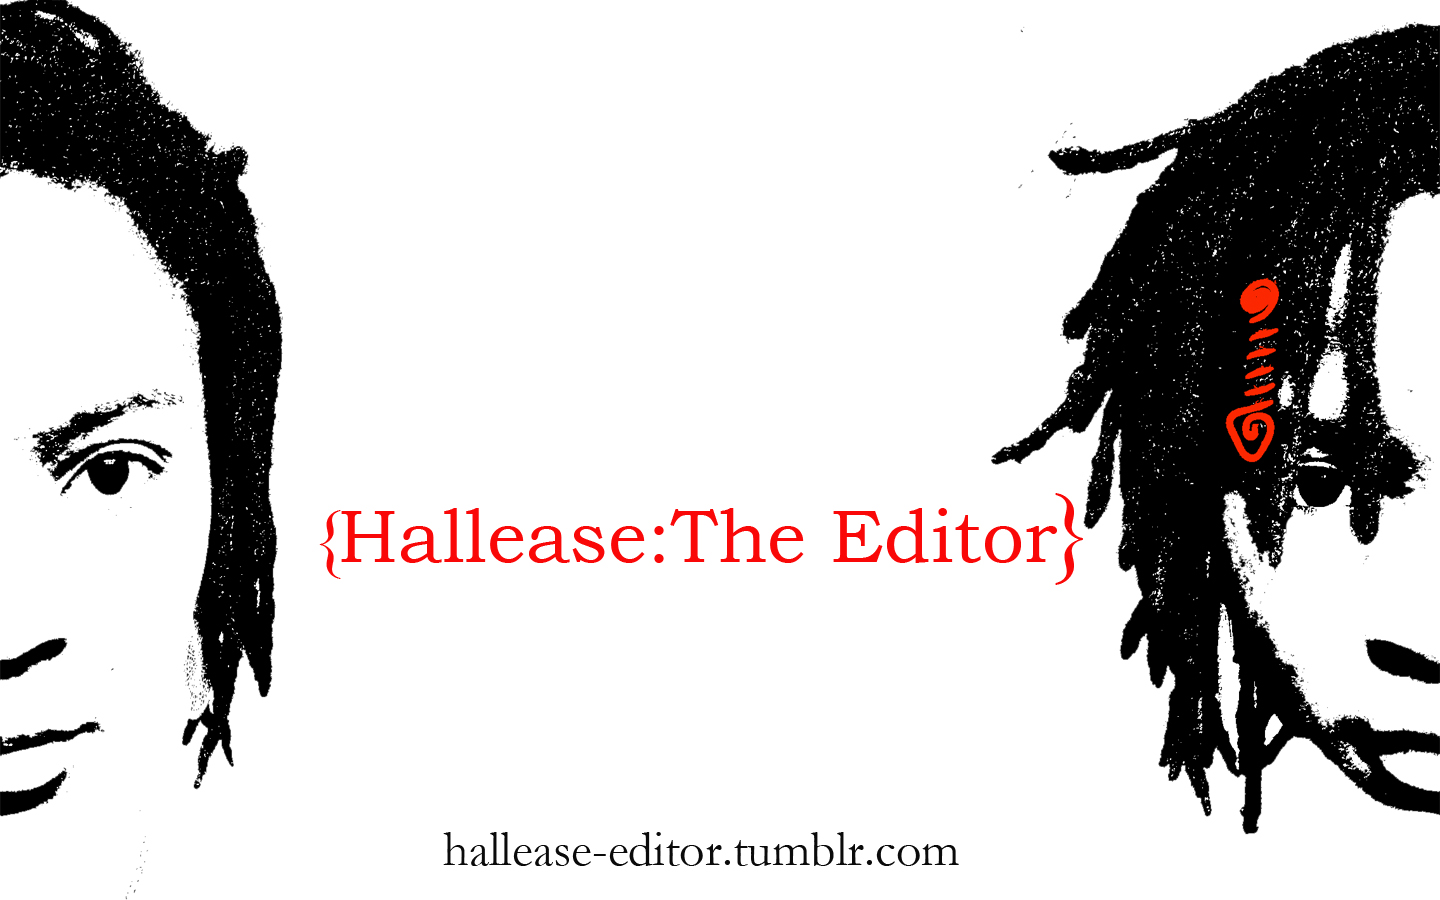 Hallease: The Editor